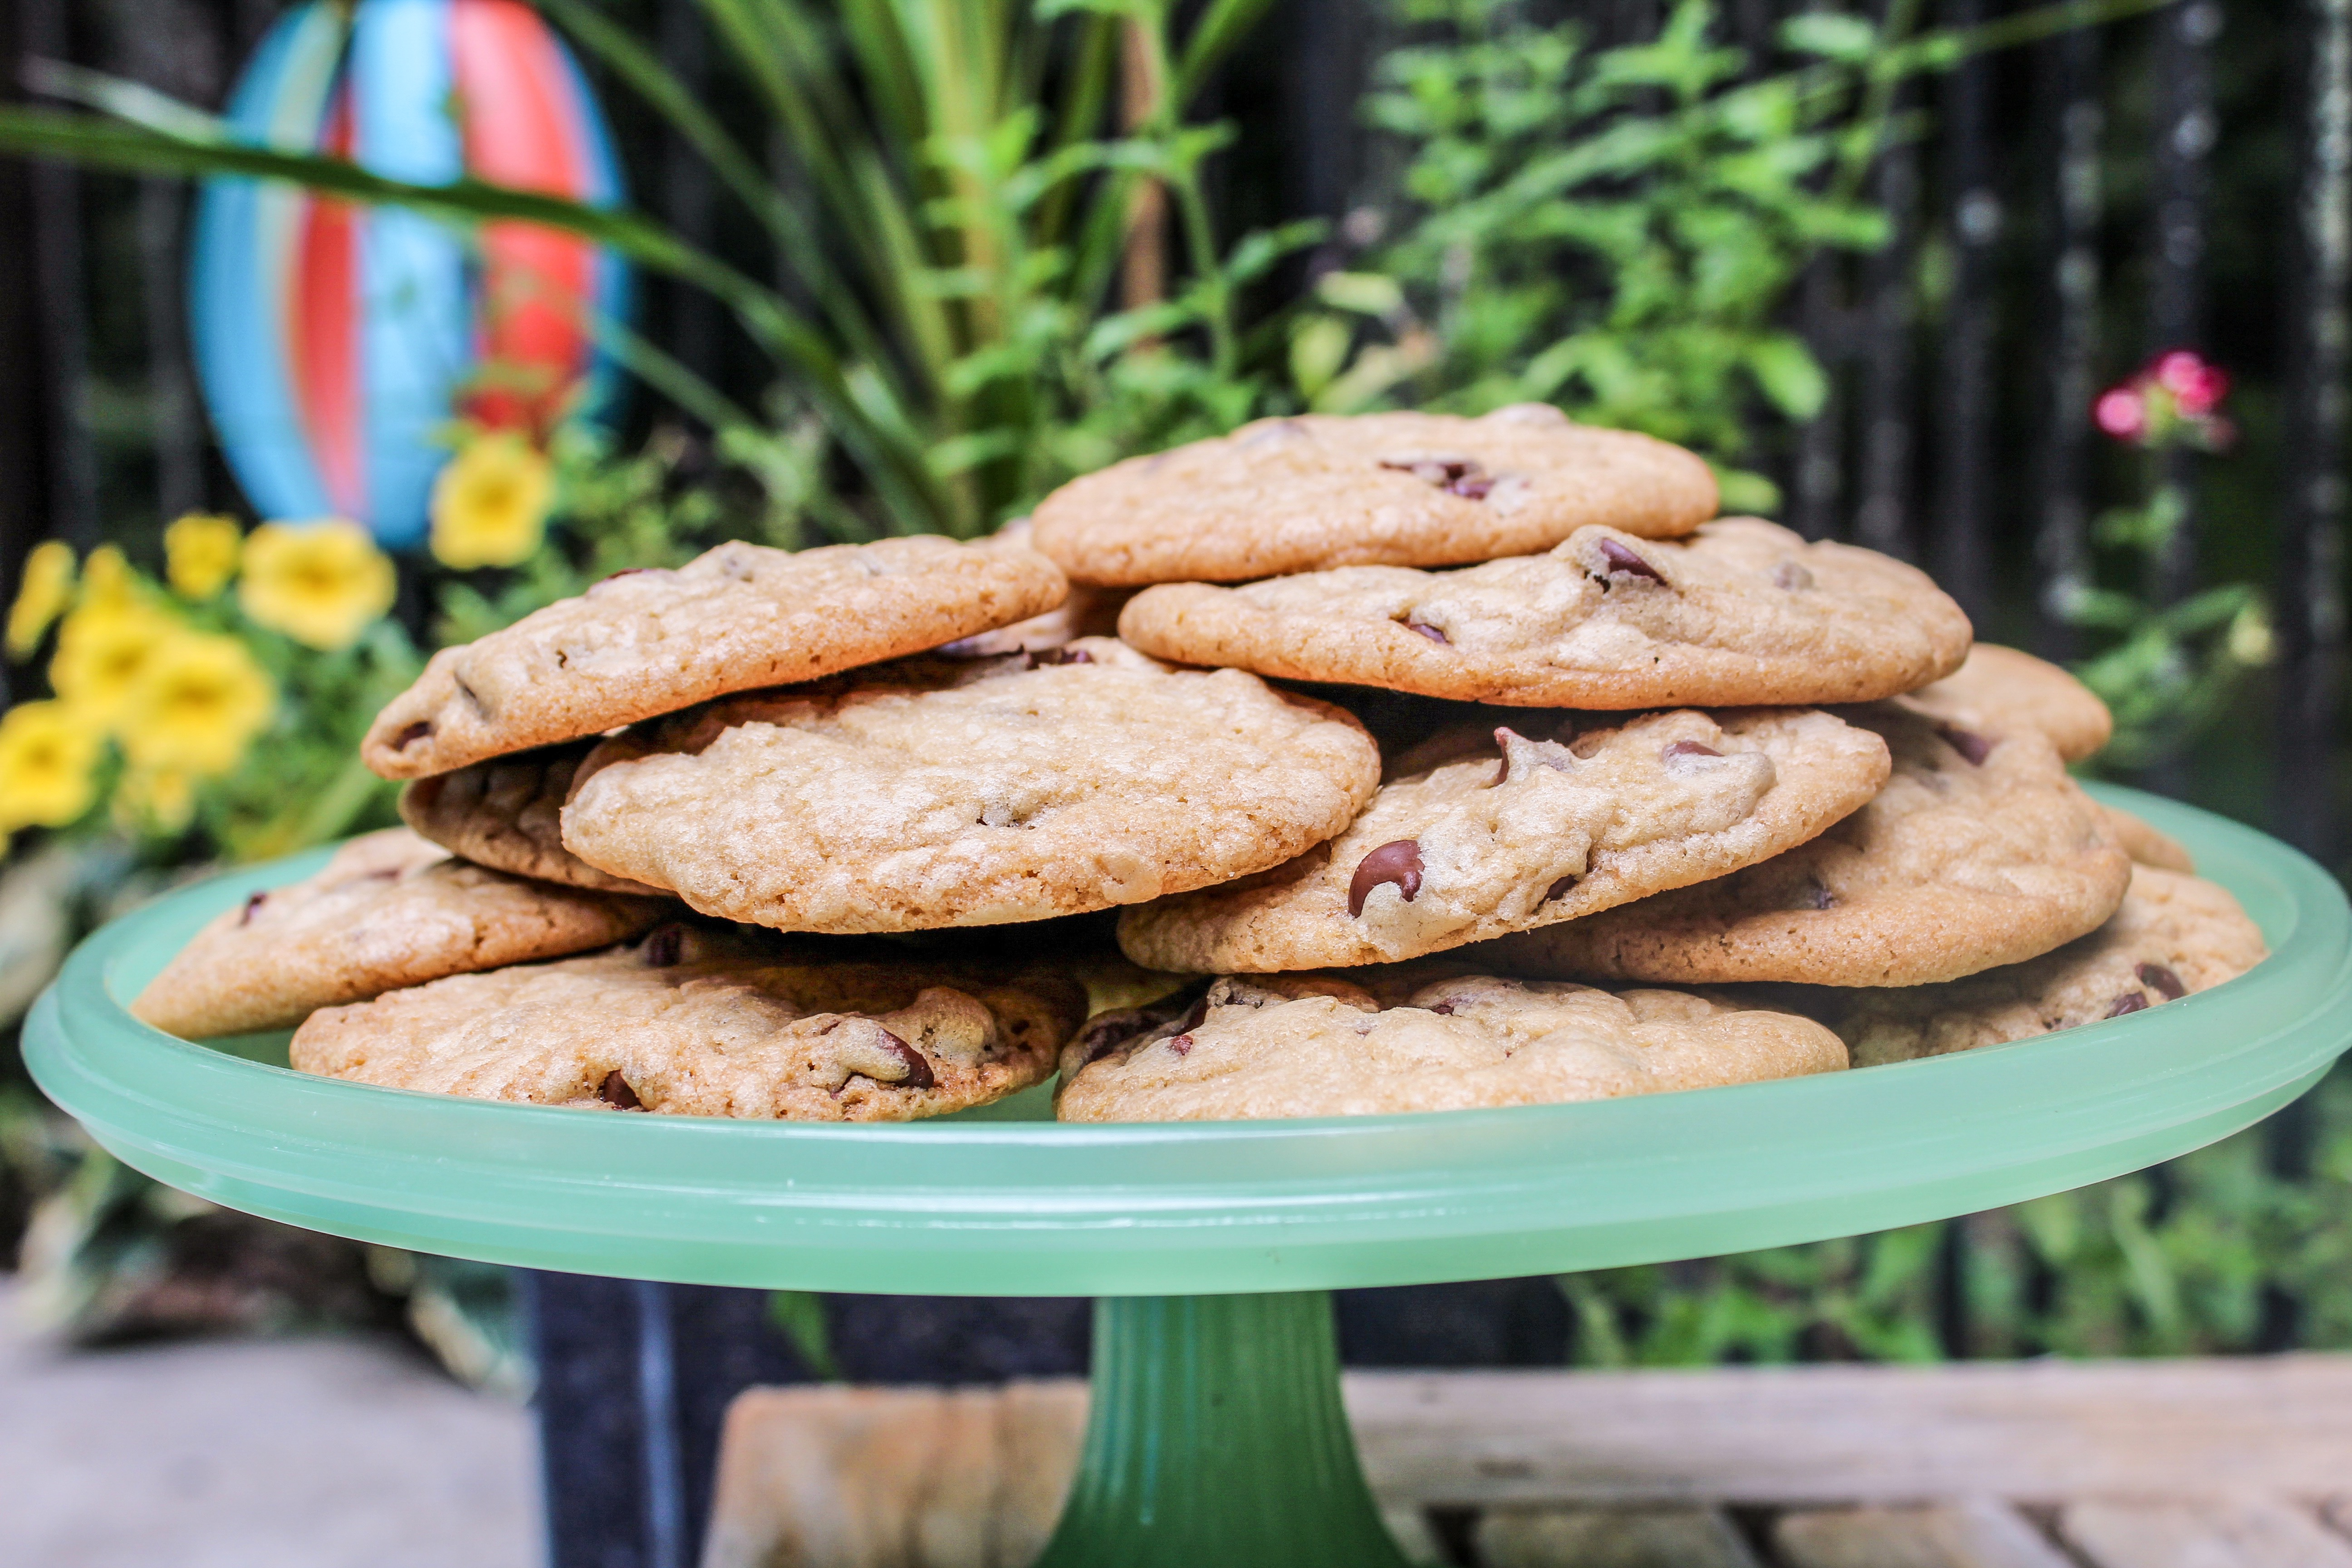 Chocolate Chip Cookie Oh How We Love You Brooklyn To The Catskills